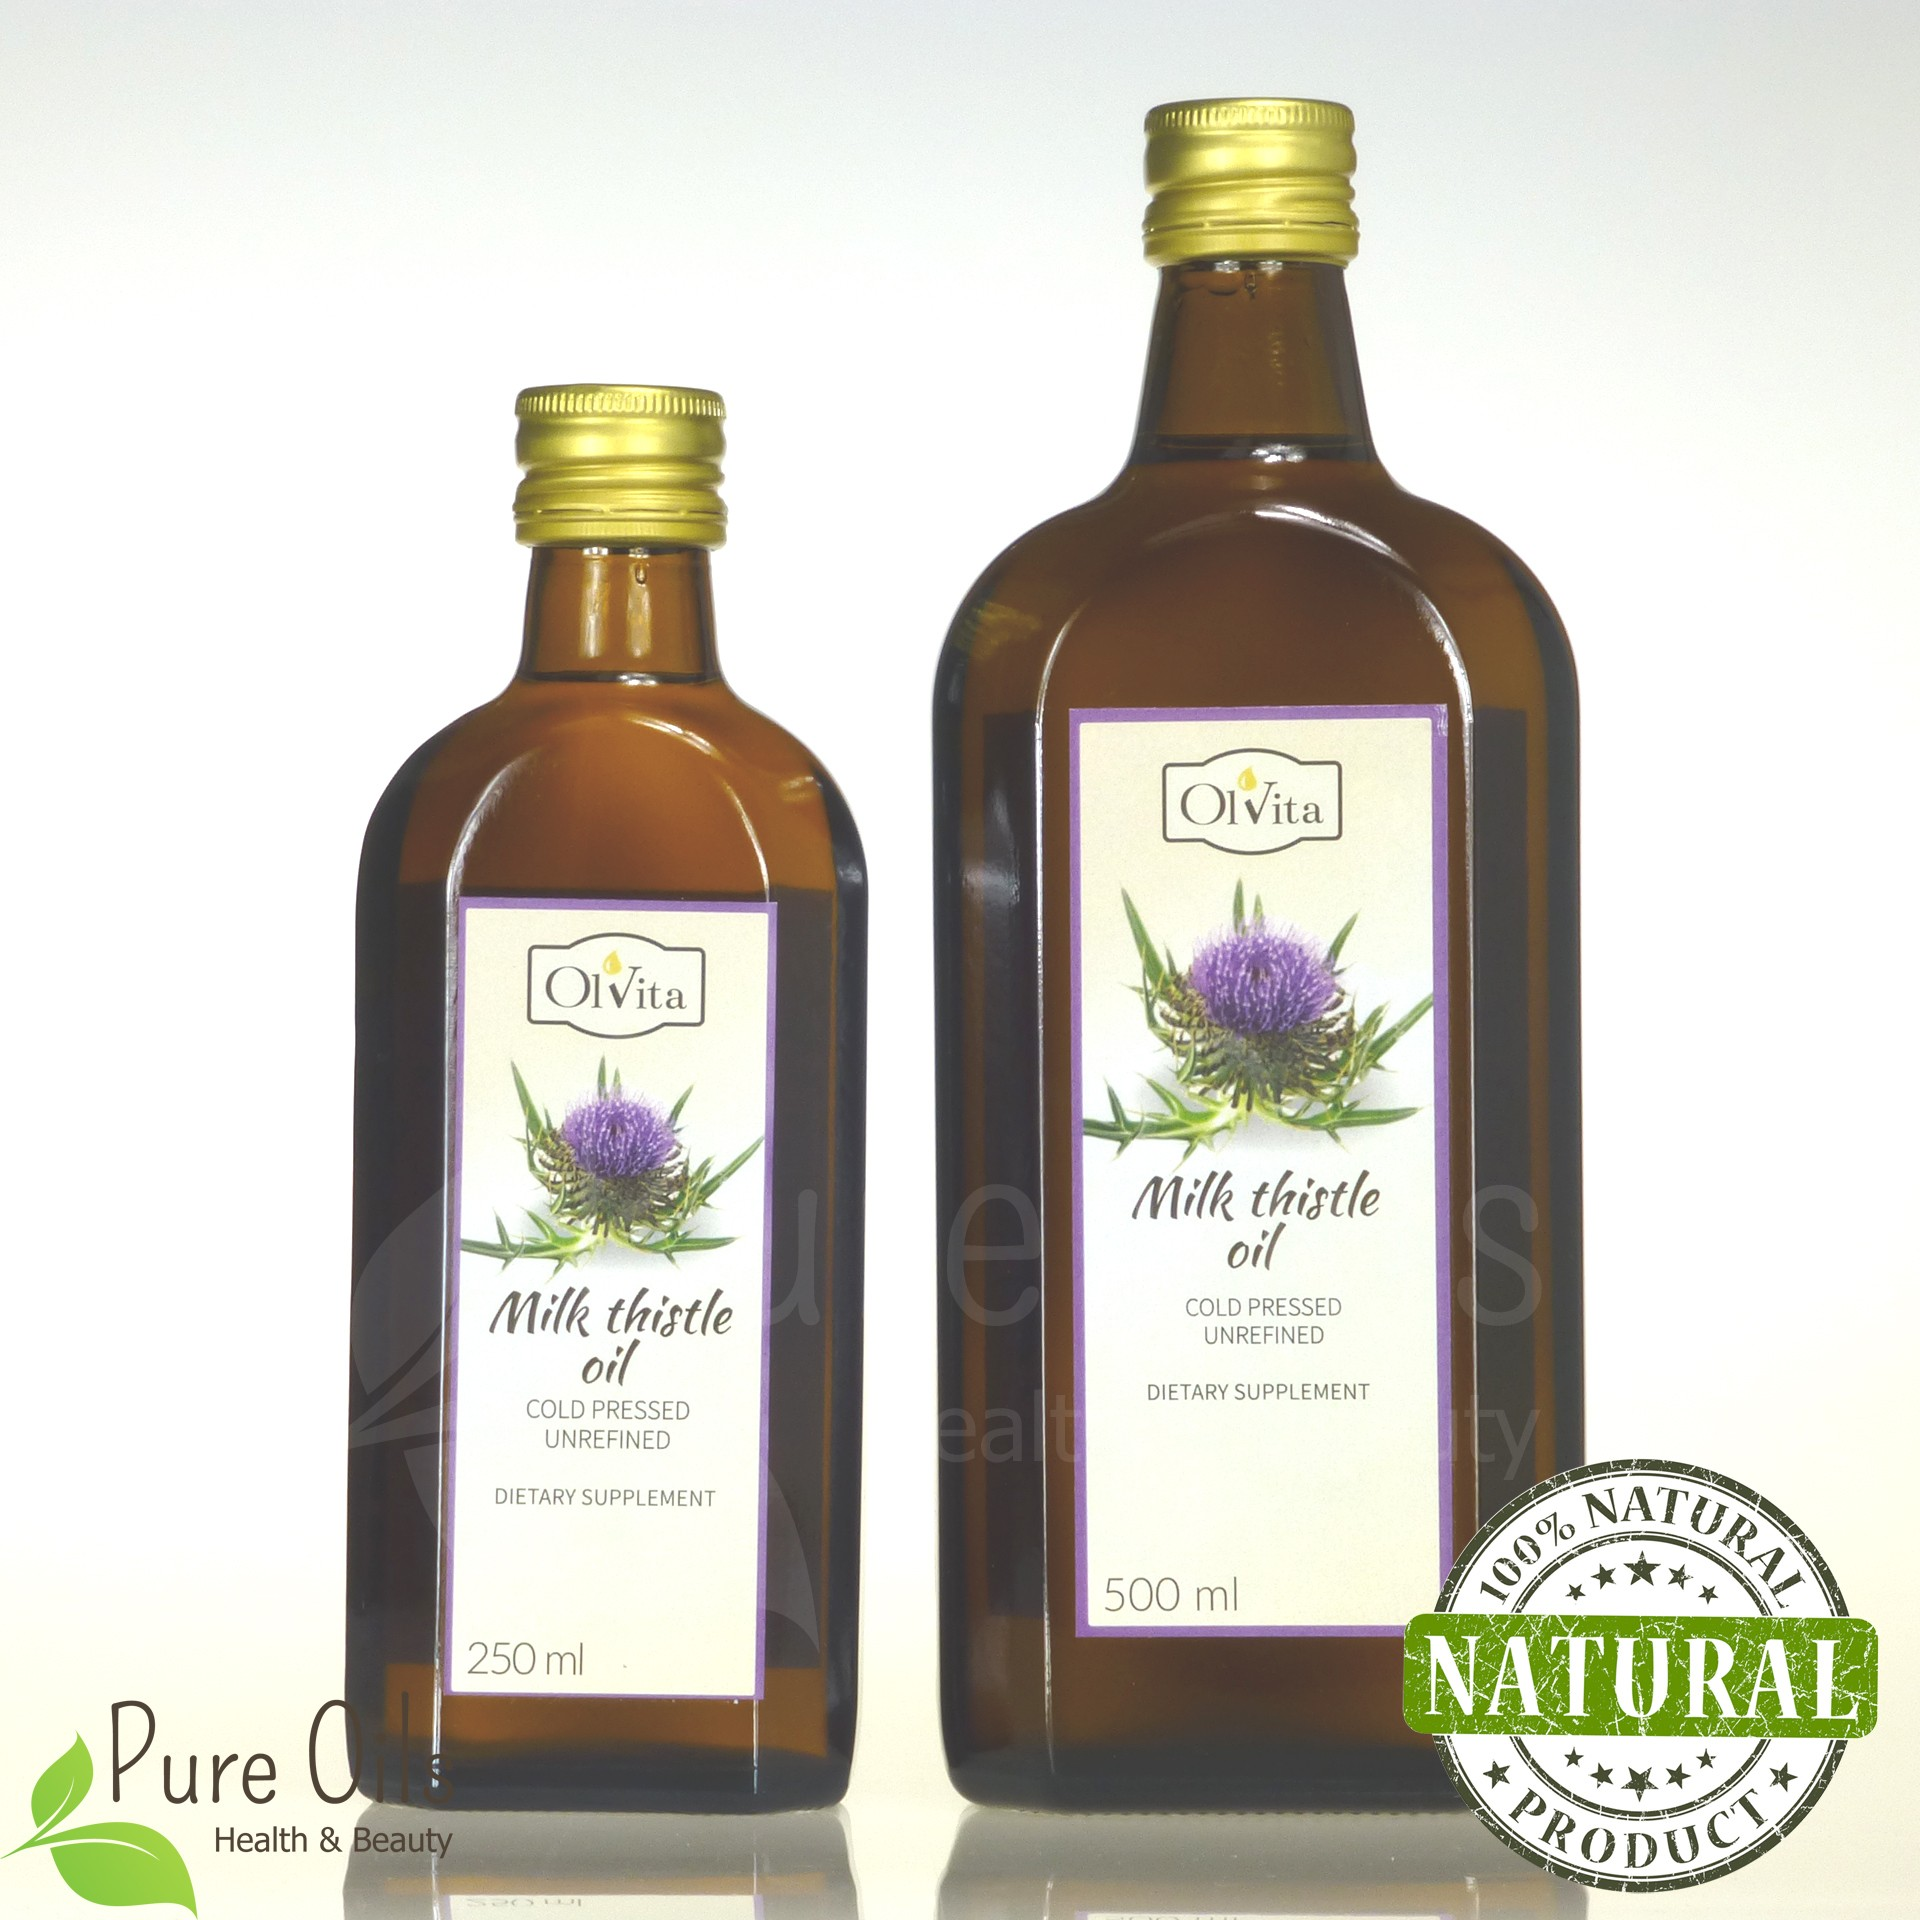 Milk Thistle Oil - Unrefined, Cold Pressed - Ol'Vita - 250 ml